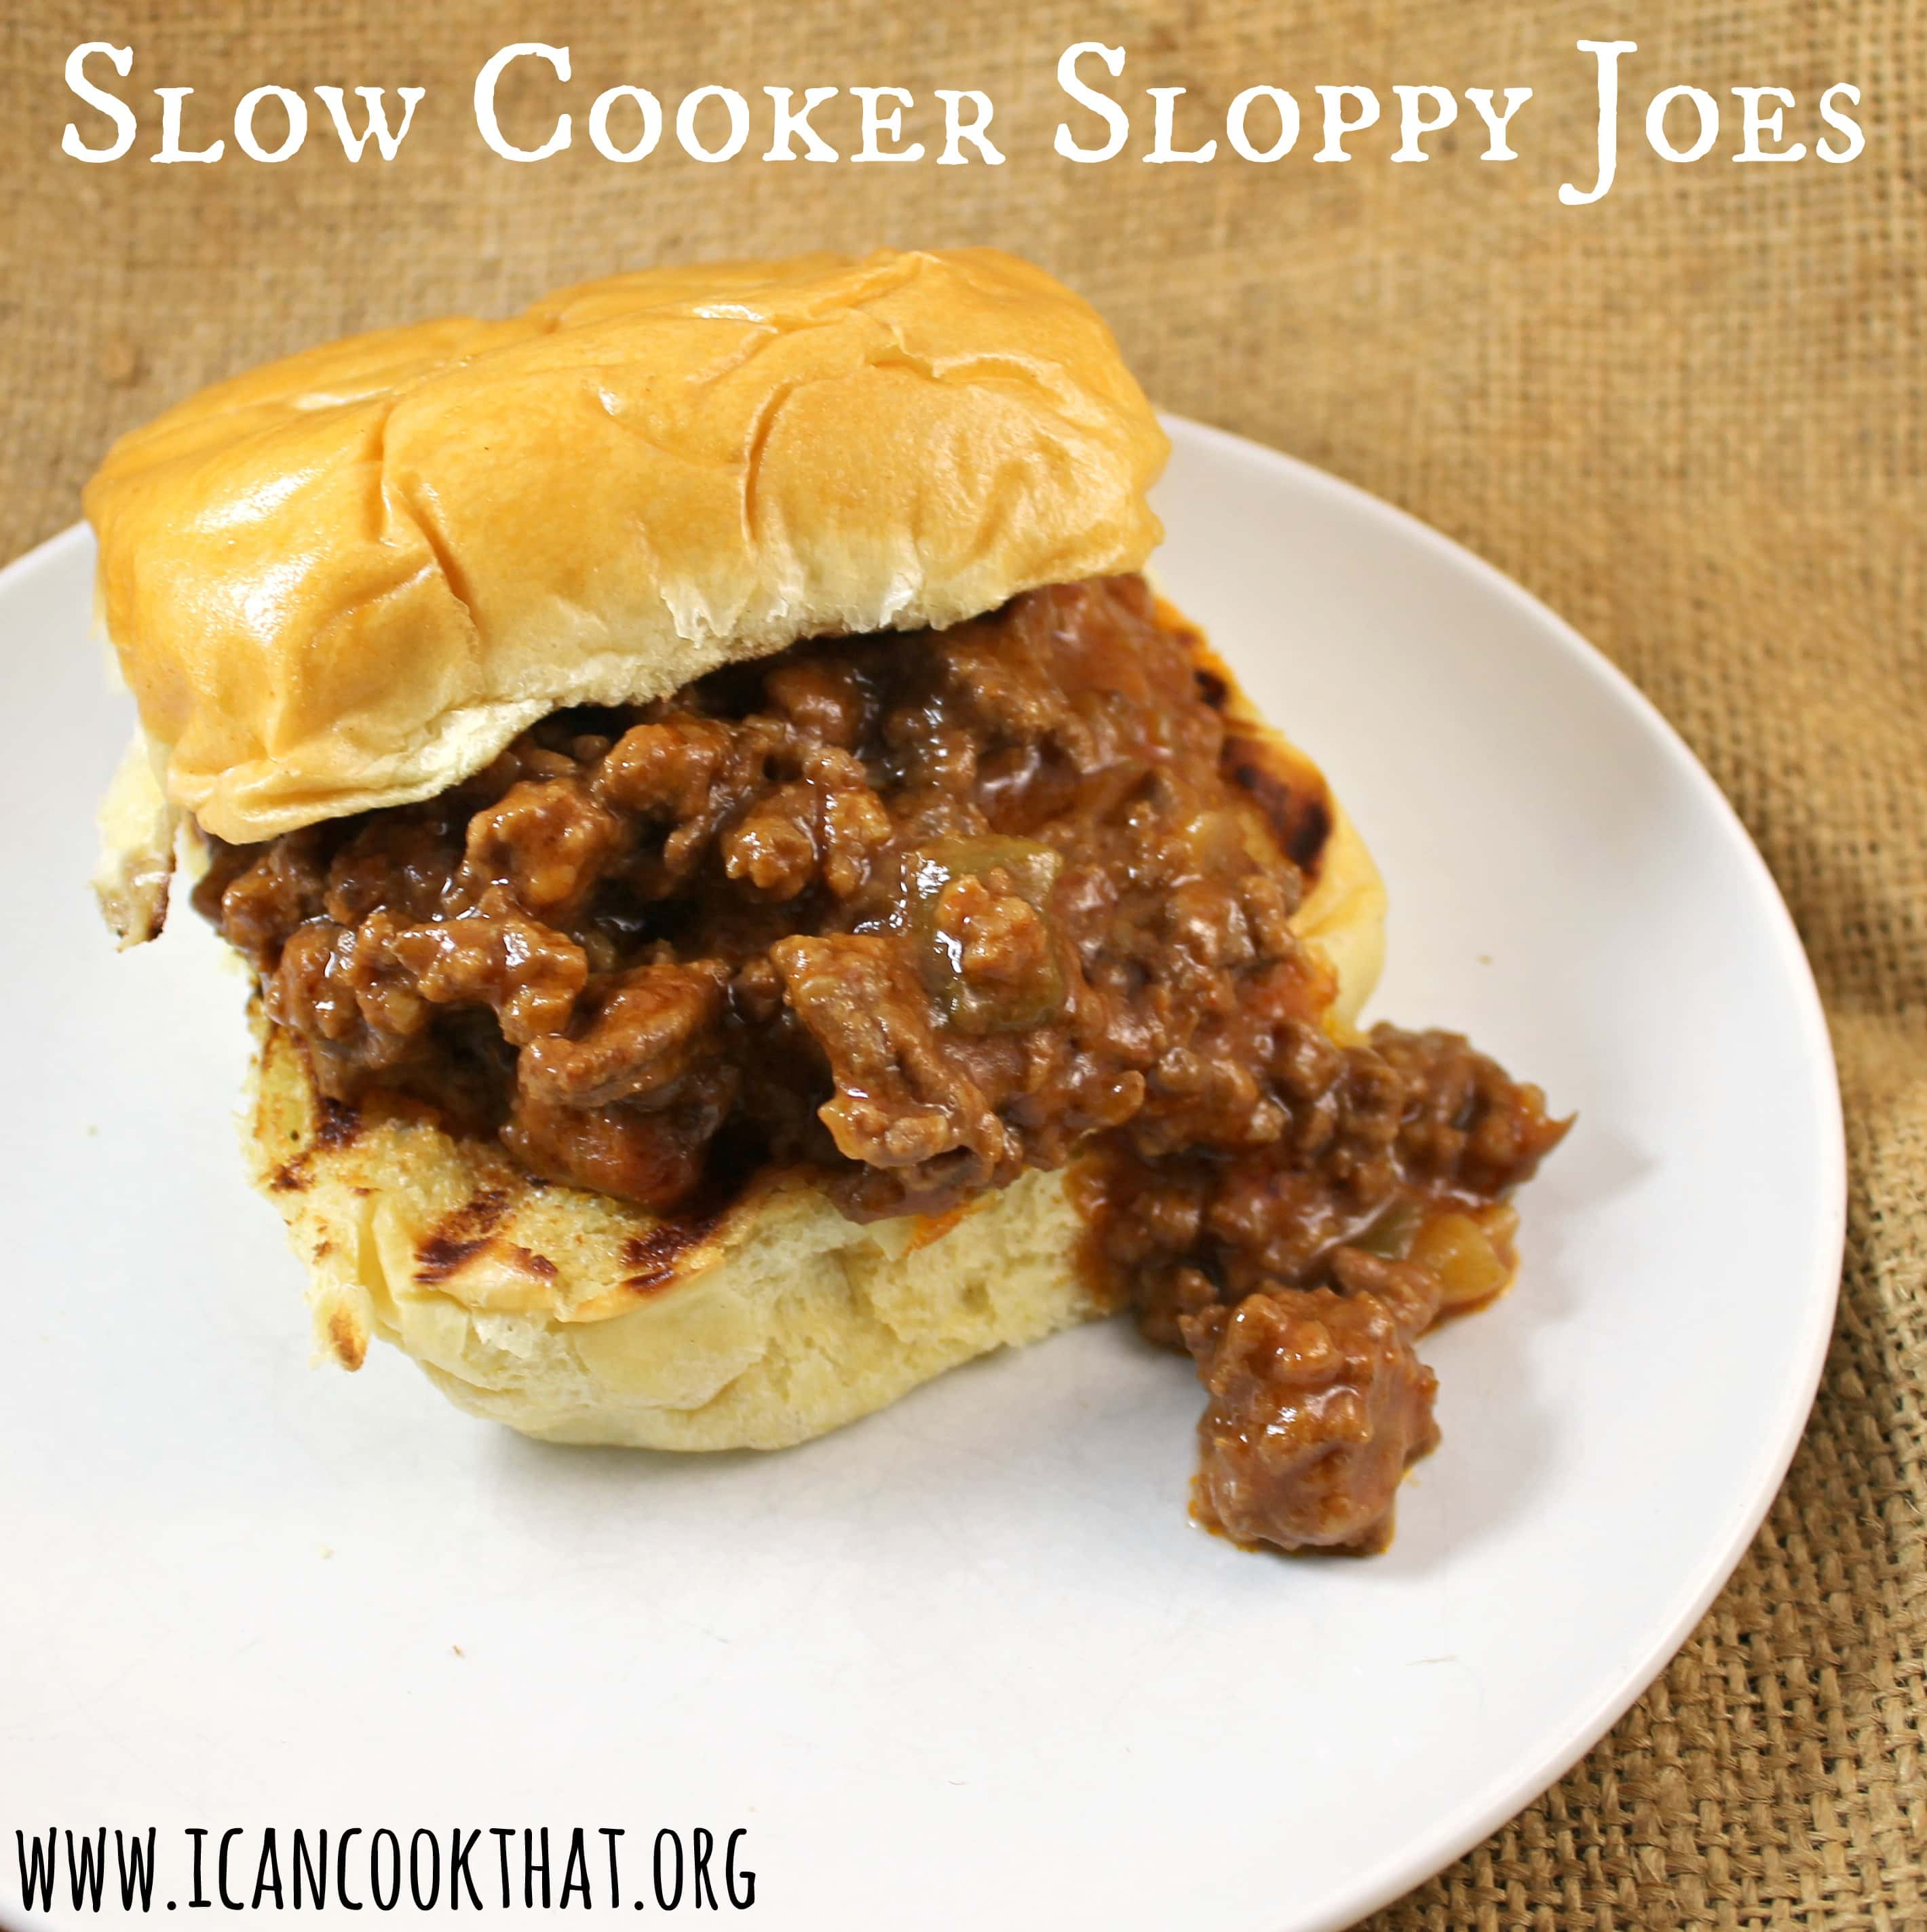 Slow Cooker Sloppy Joes Sandwich Recipe | I Can Cook That